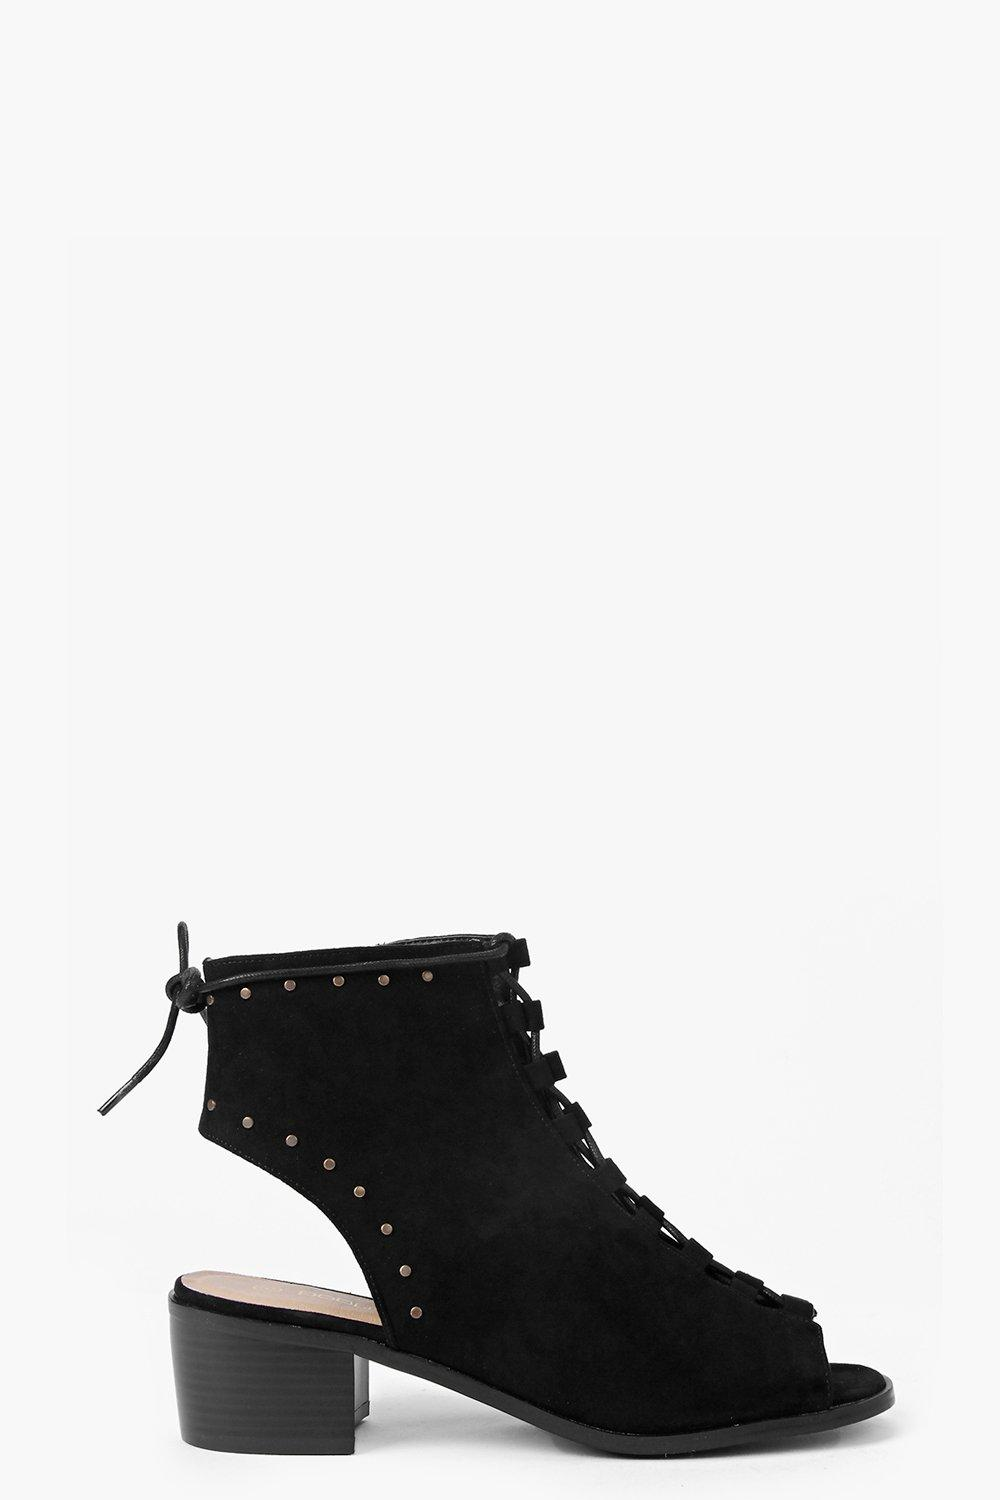 Joanne Pinstud Lace Up Block Heel